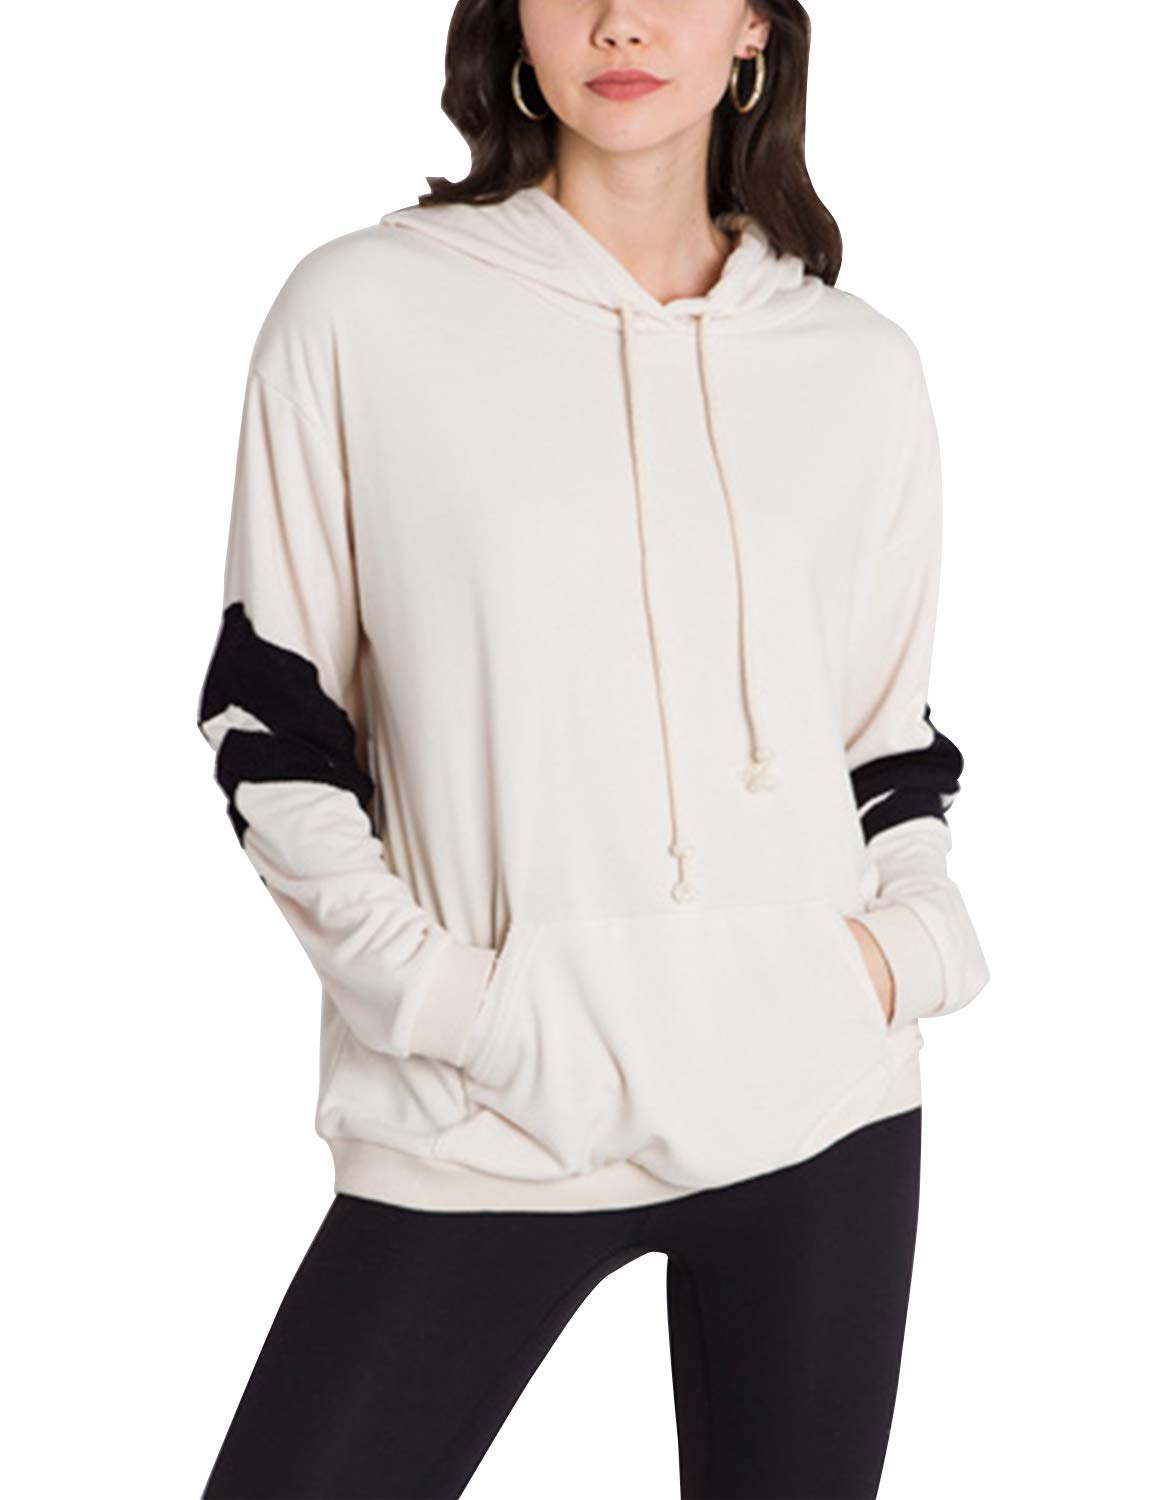 Blooming Jelly Womens Long Sleeve Color Block Pocketed Drawstring Pullover Hoodies White